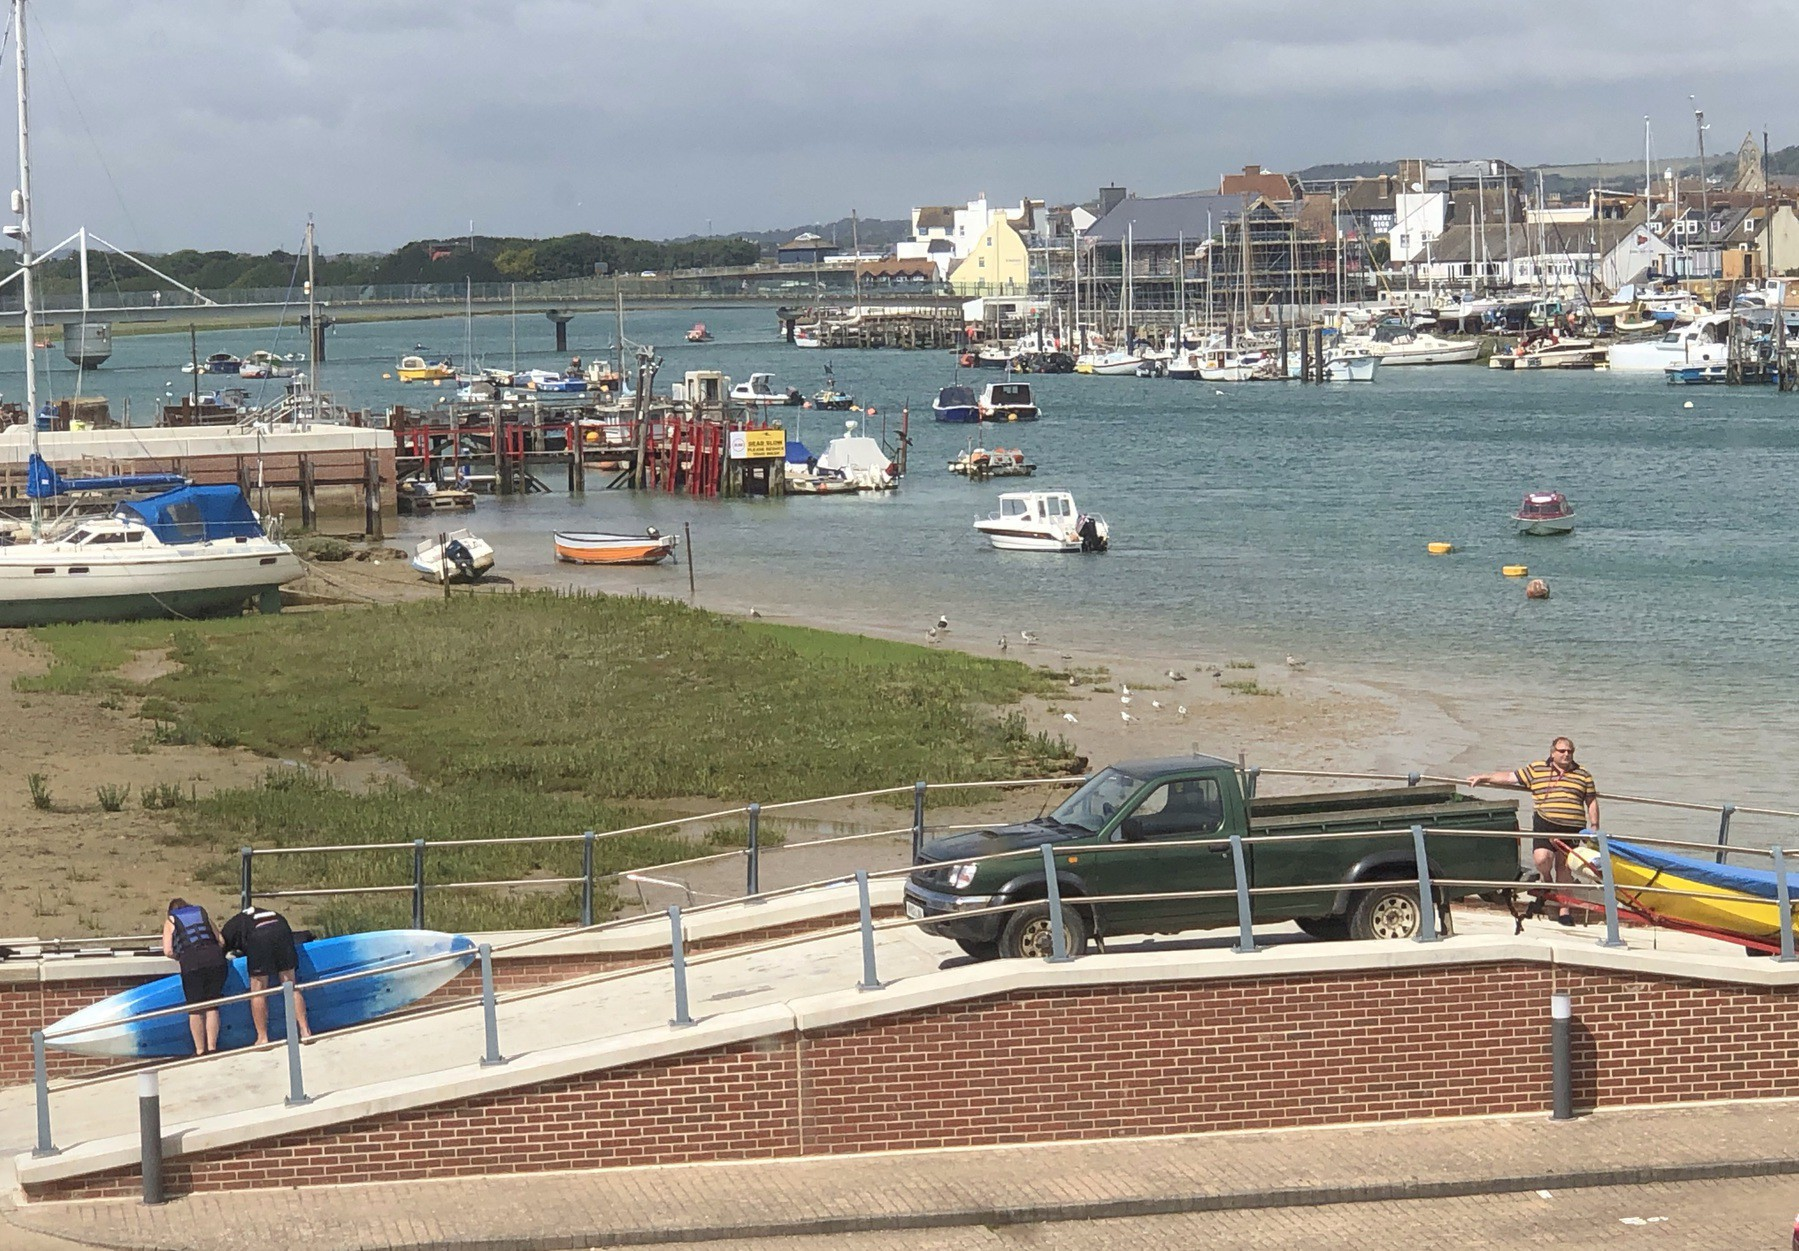 Boaters and SUPers waiting to launch from a slipway.